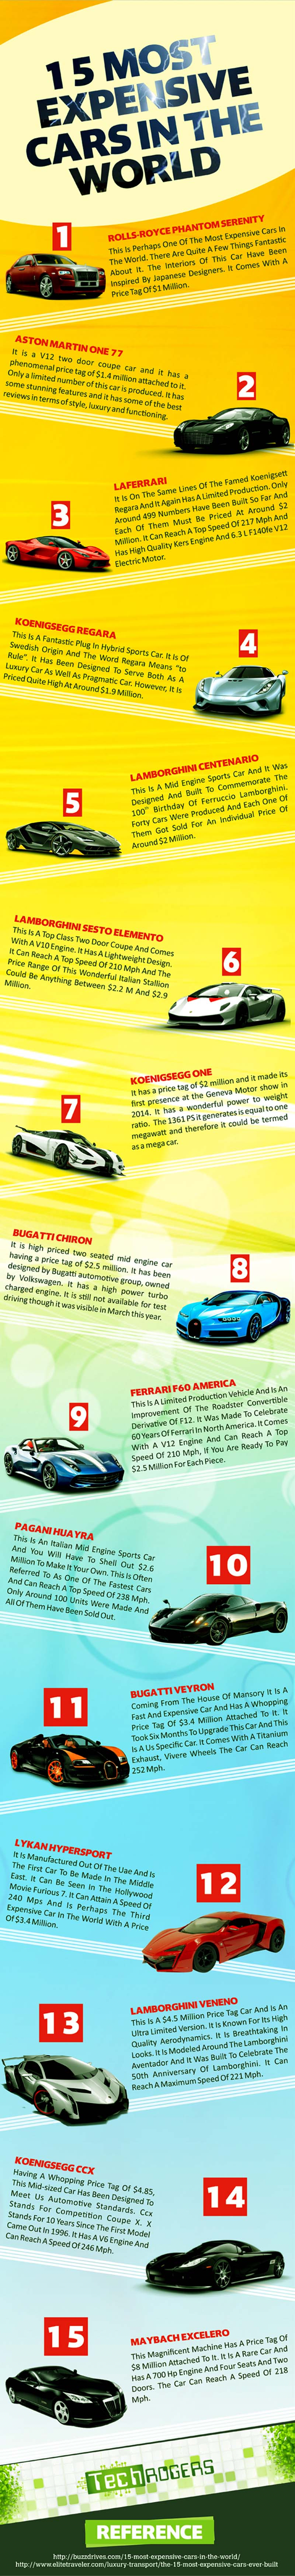 15 Most Expensive Cars In The World [Infographic]